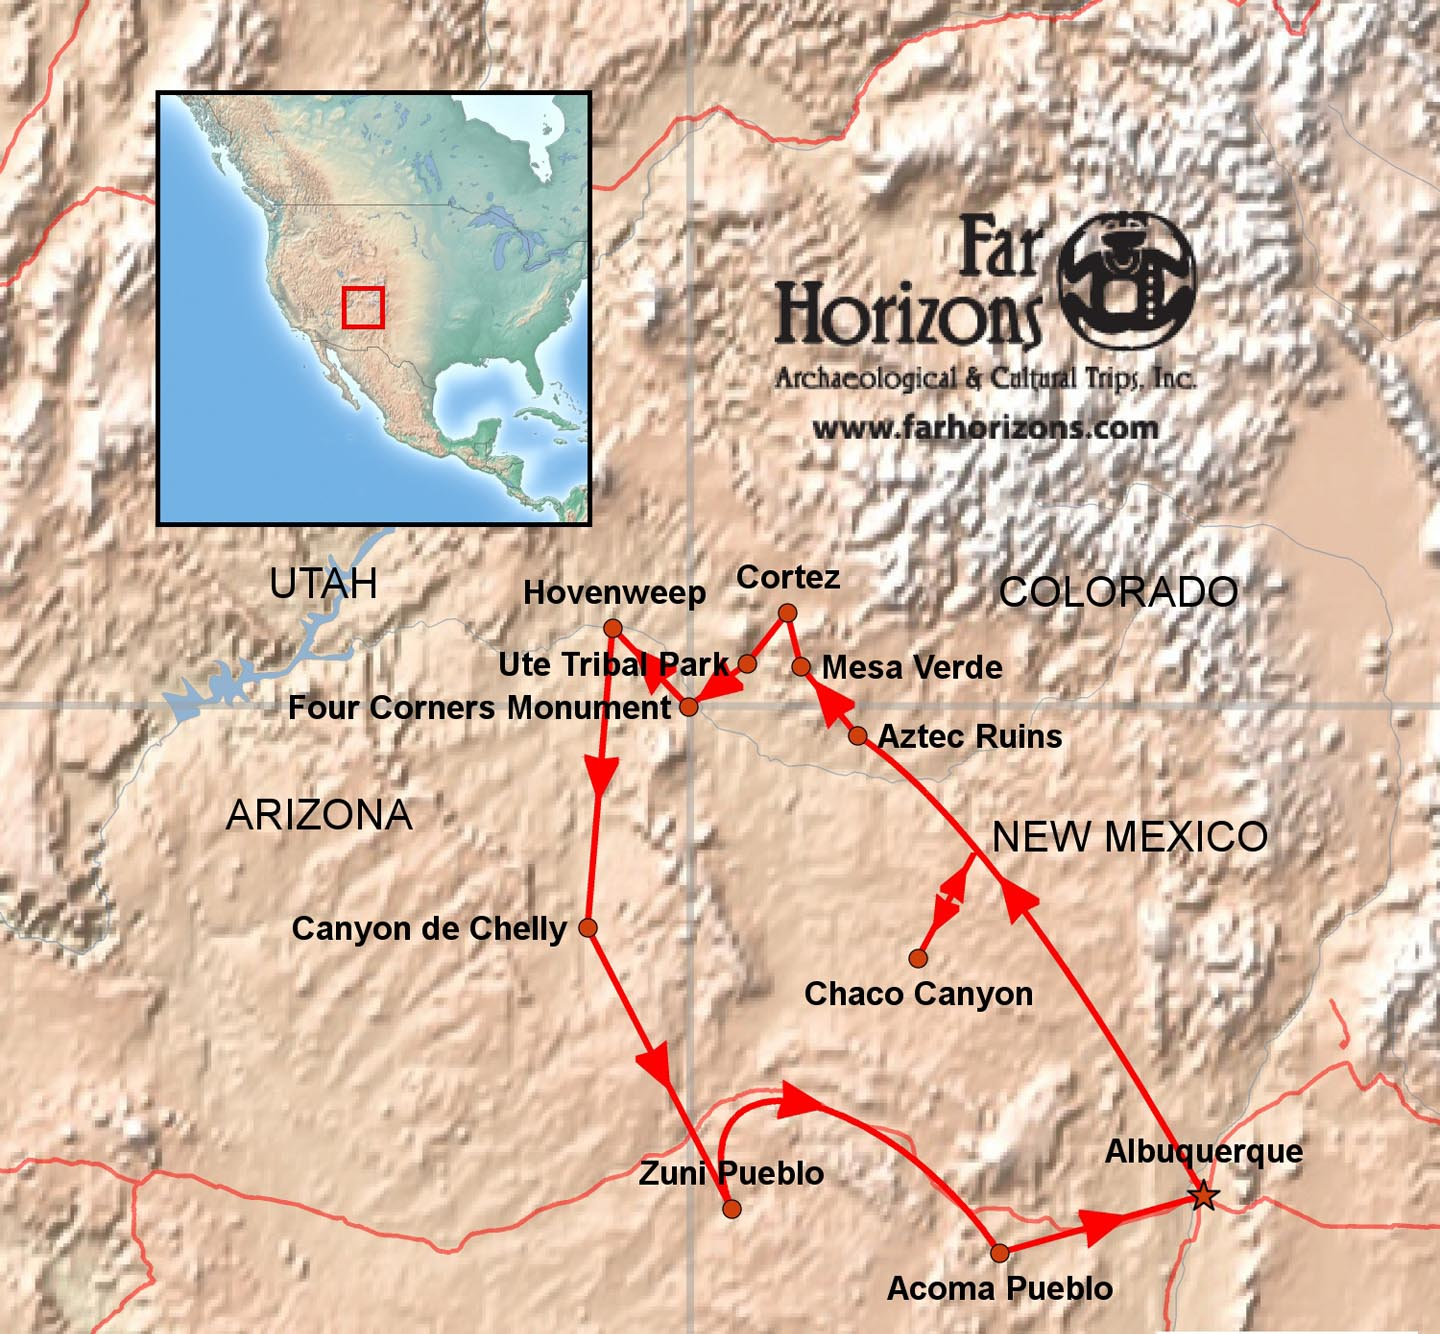 Map Of Southwest Arizona.American Southwest Tour Canyon De Chelly Chaco Mesa Verde Ute Navajo